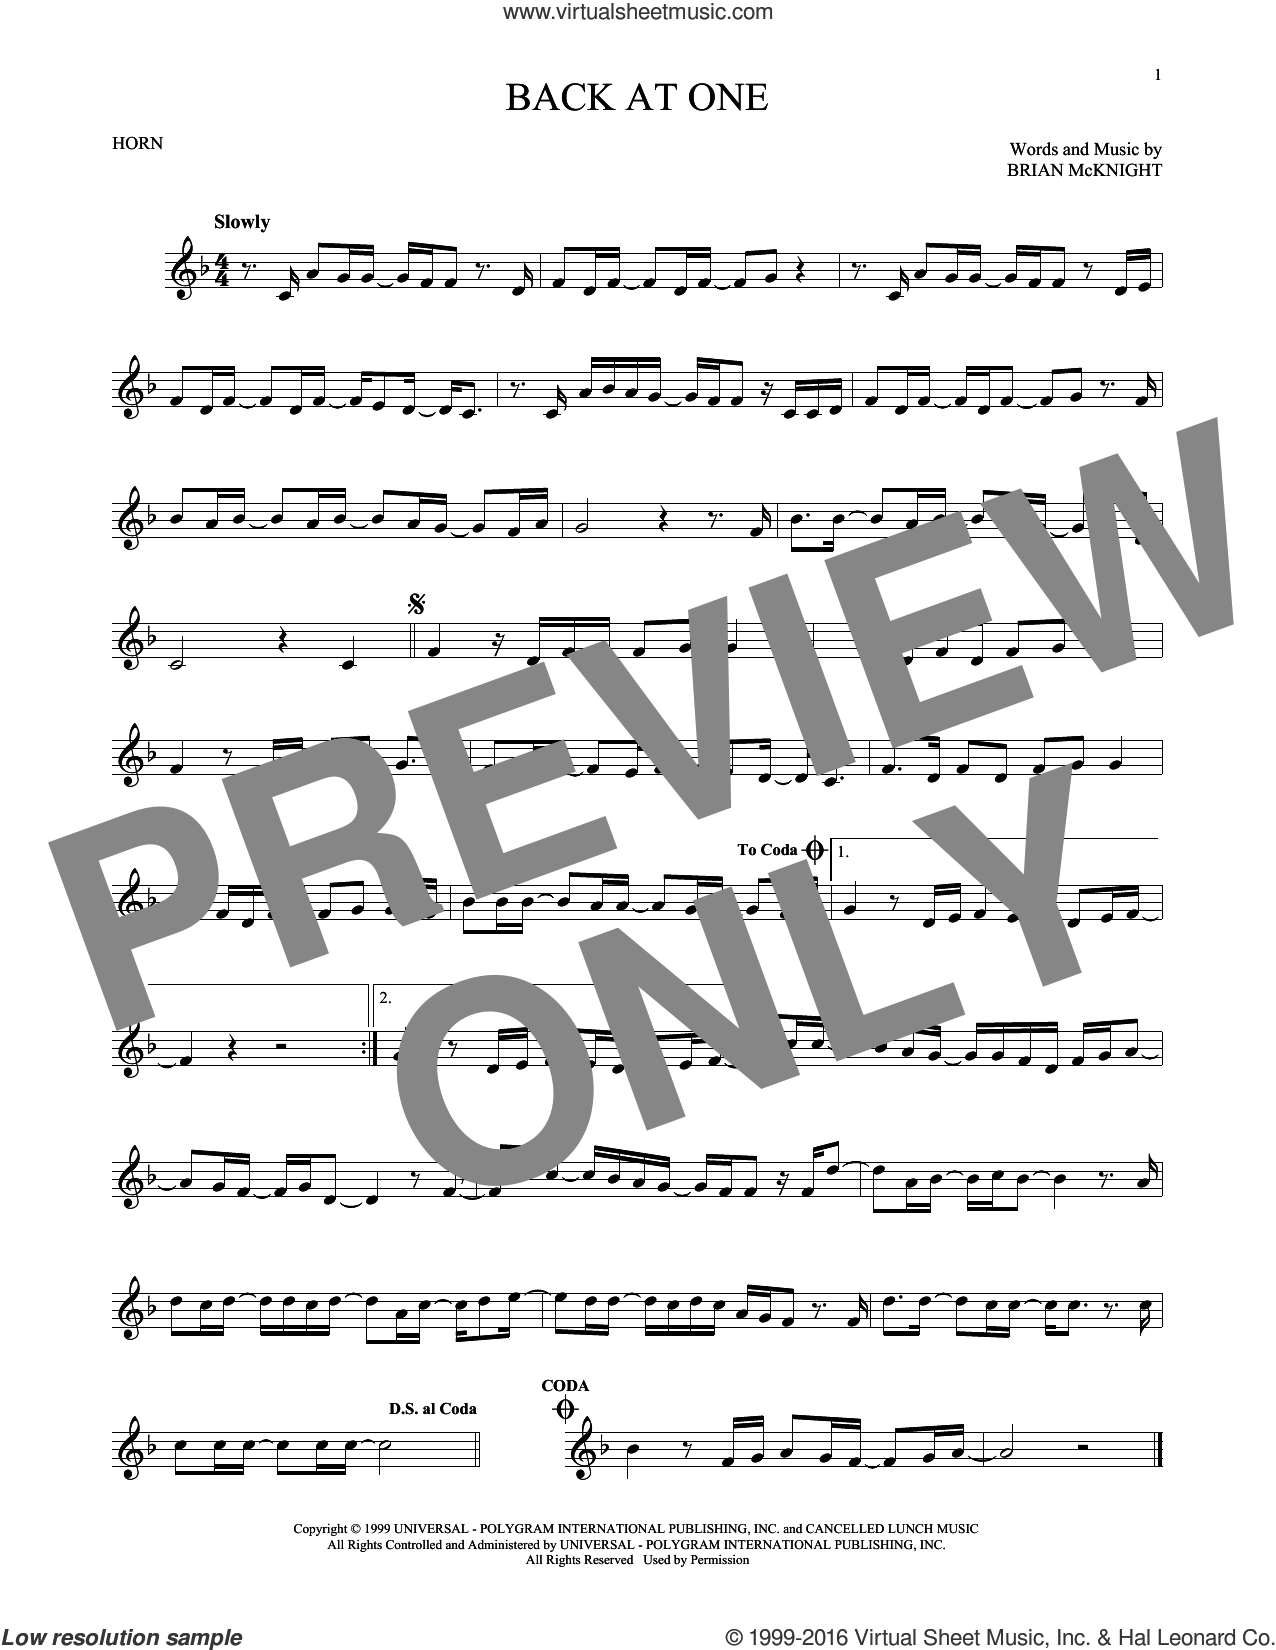 Back At One sheet music for horn solo by Brian McKnight, intermediate skill level